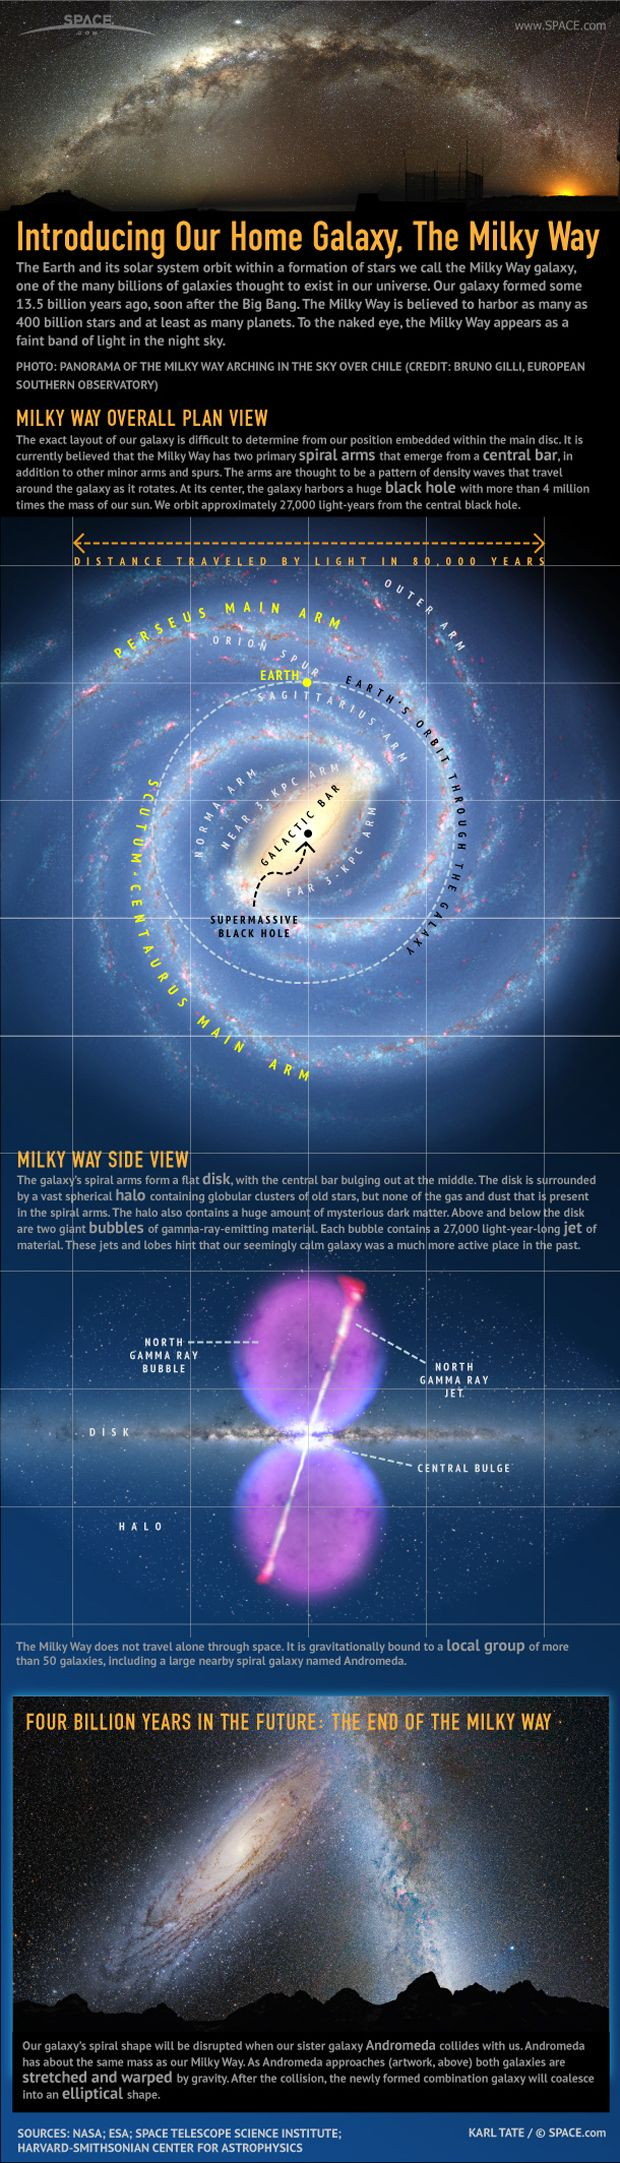 The Milky Way, our home galaxy in space, is a vast galaxy containing 400 billion suns, at least that many planets, and a 4-billion-solar-mass black hole at the center. See how our Milky Way Galaxy works in this Space.com infographic.